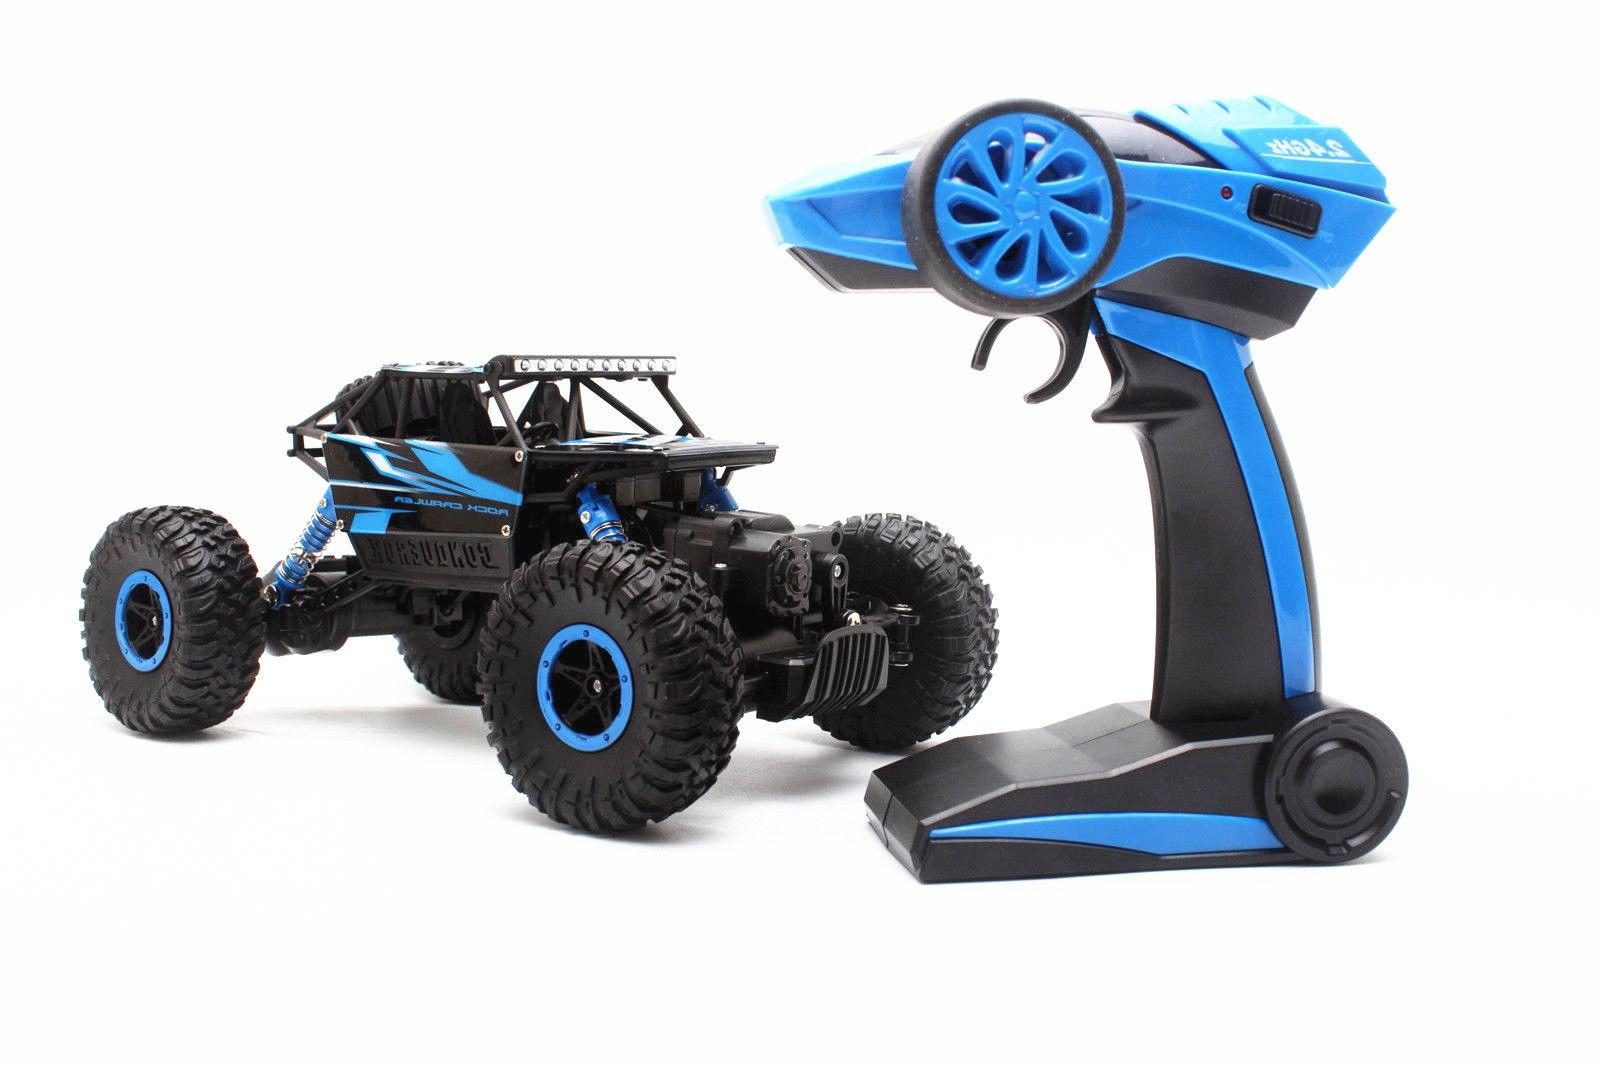 4WD Monster 1/18 Car Vehicle Remote Control Car